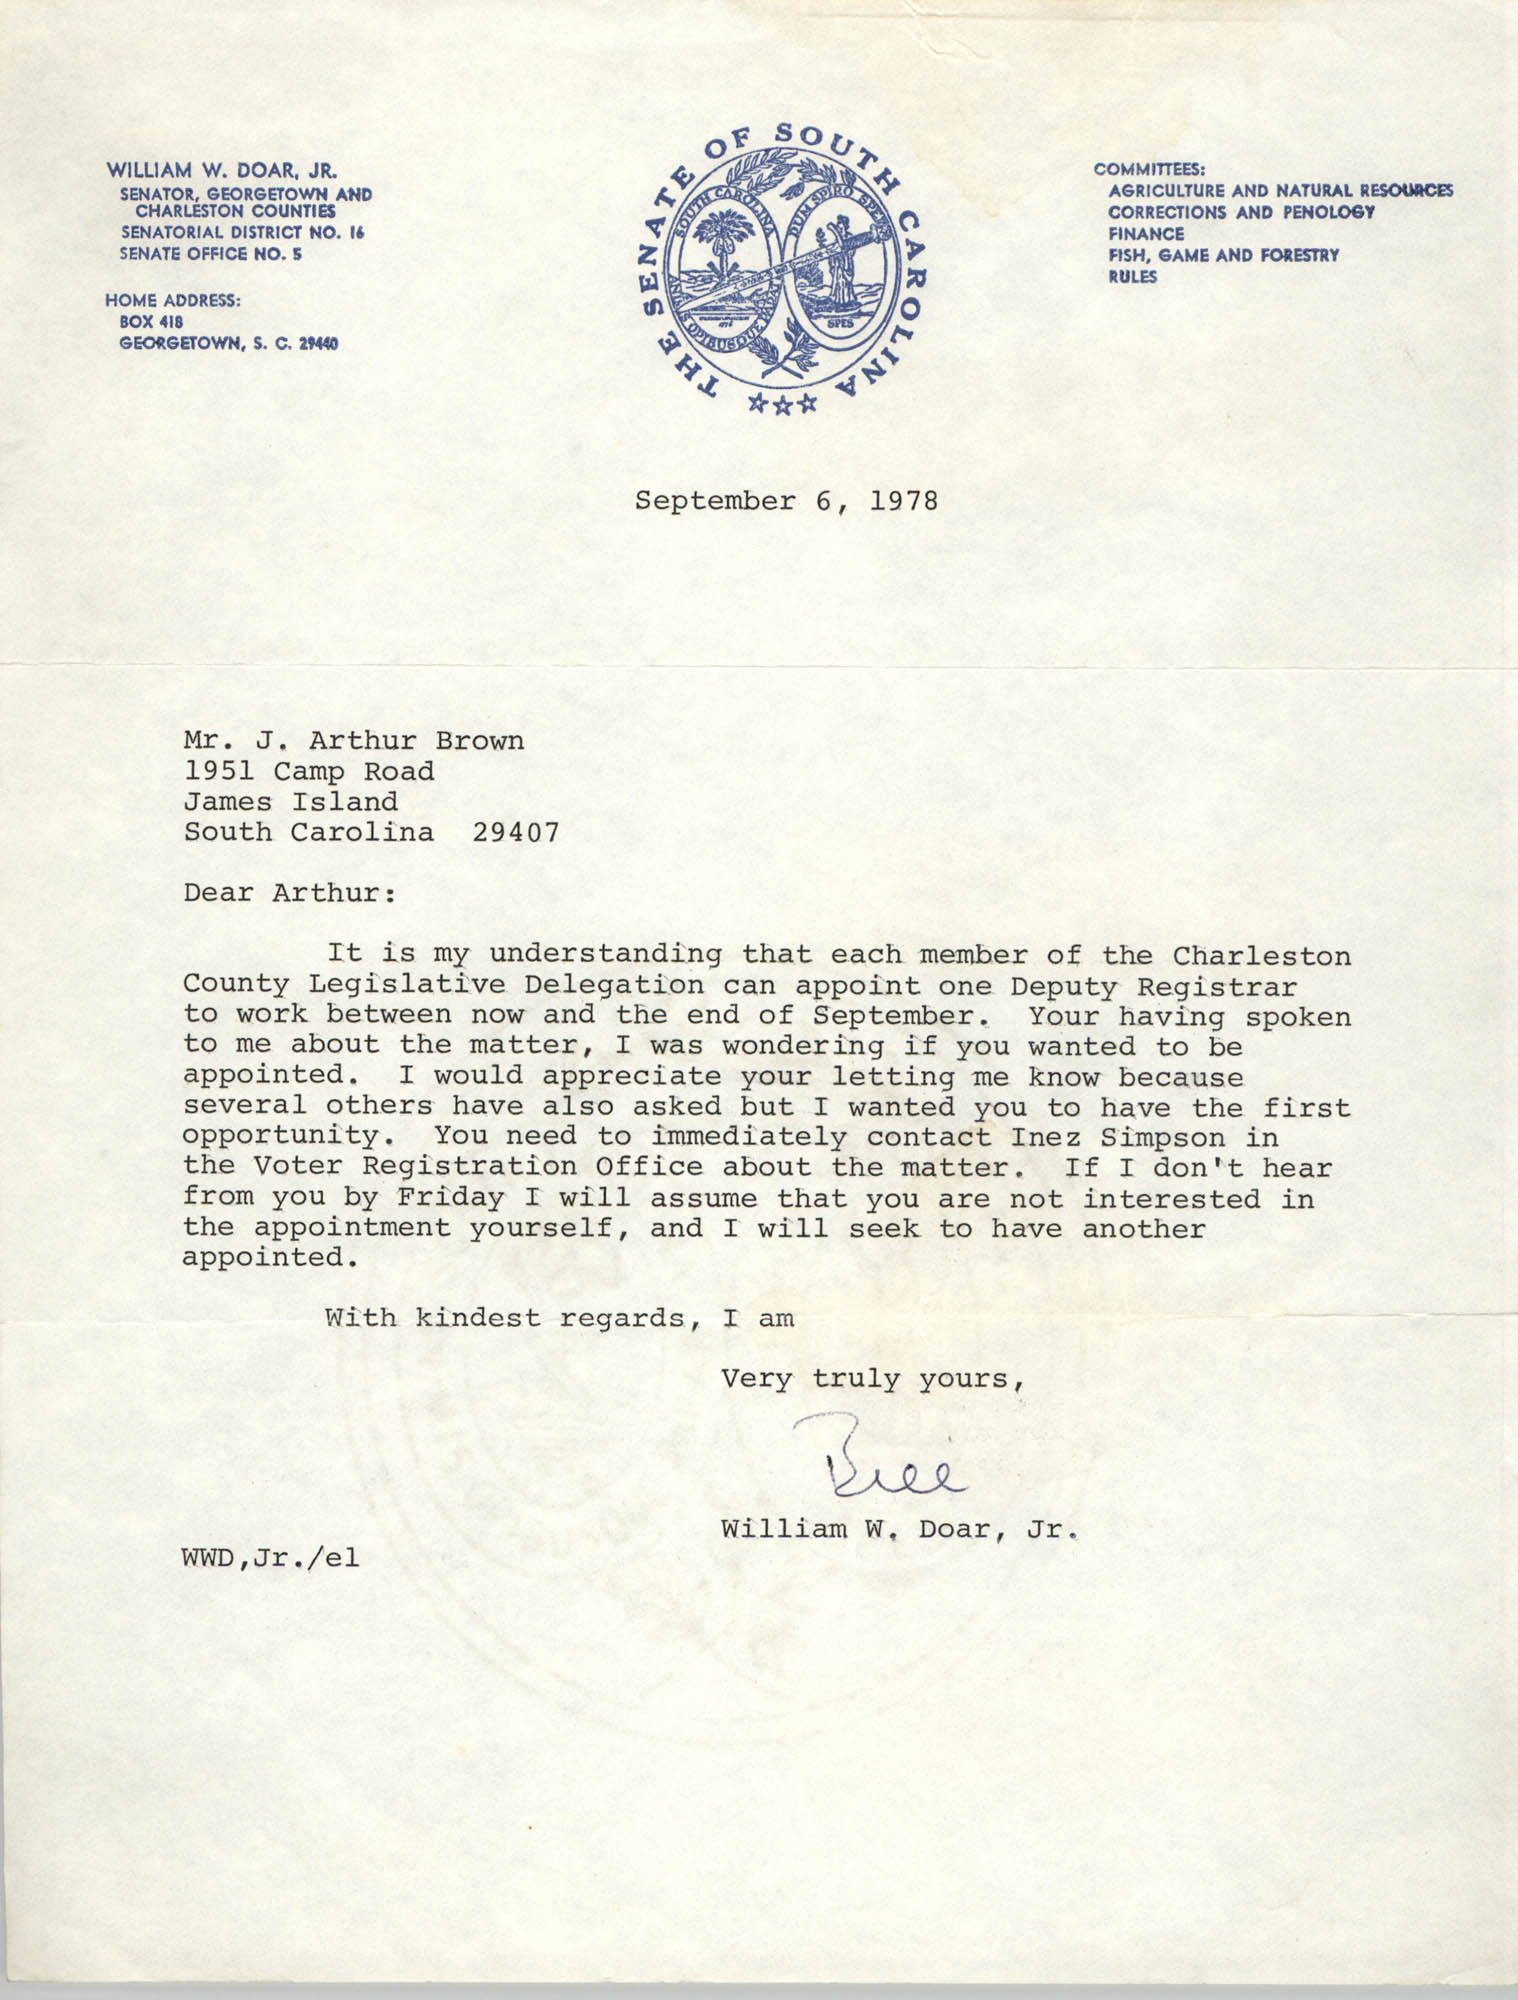 Letter from William W. Doar, Jr. to J. Arthur Brown, September 6, 1978